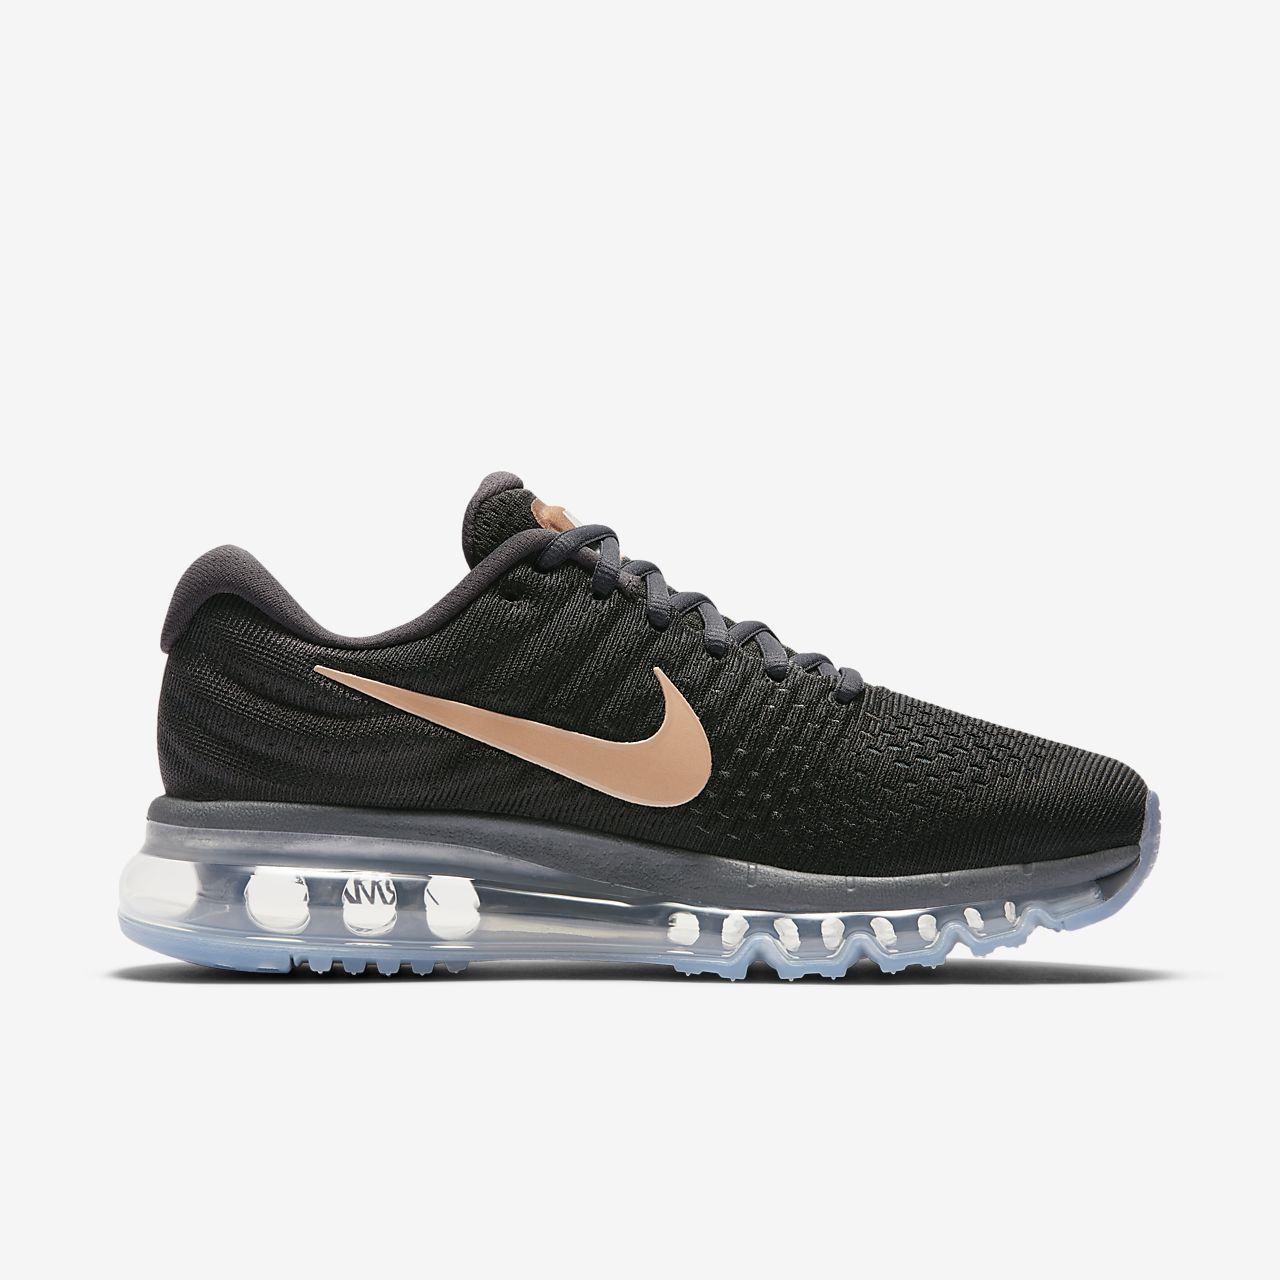 nike shoes air max 2017 nz